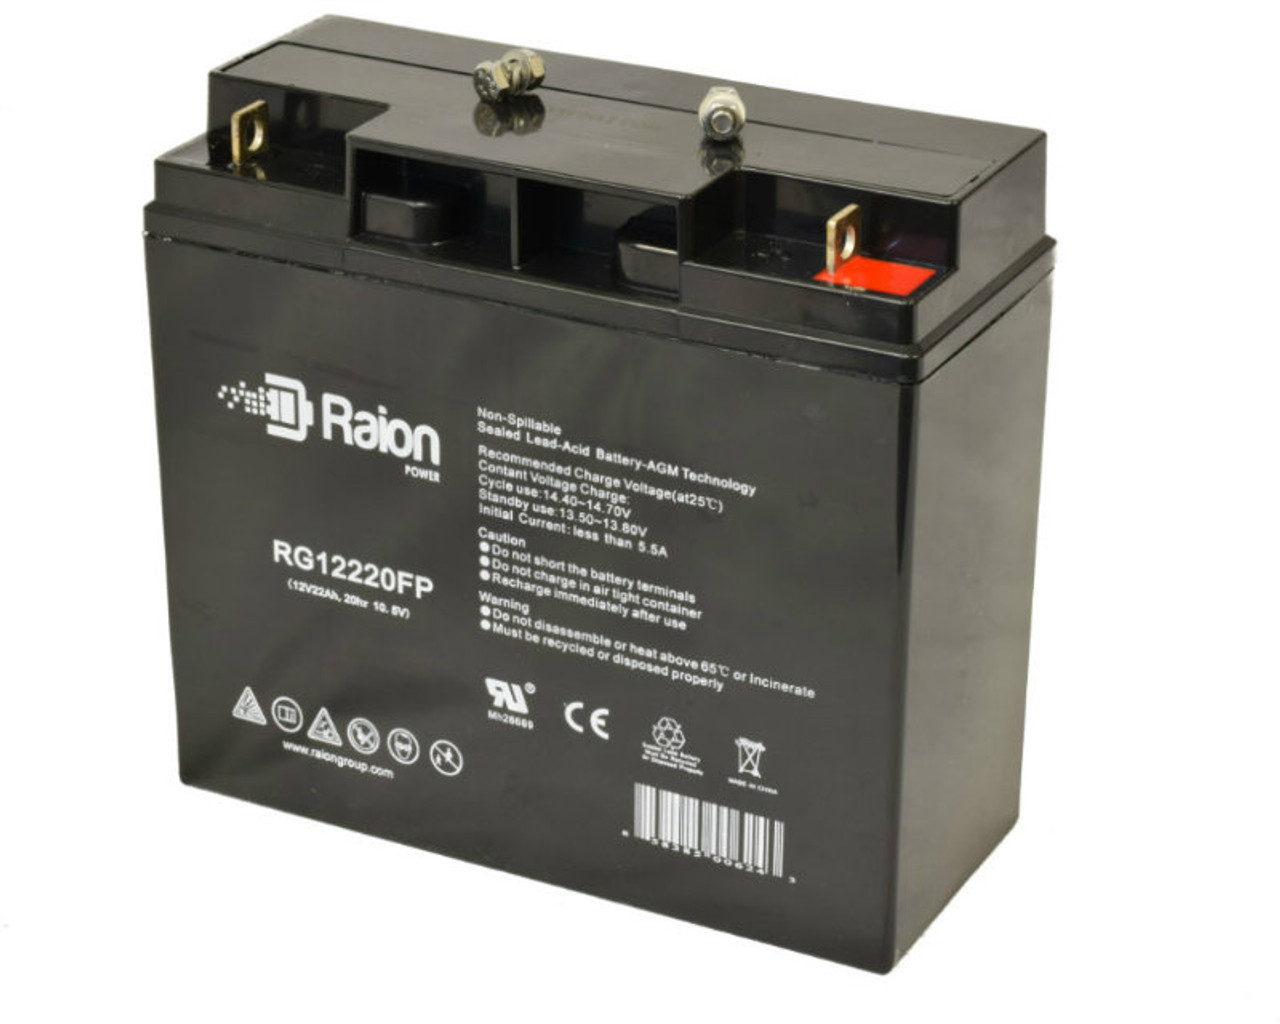 Raion Power RG12220FP Replacement Wheelchair Battery For Merits Pioneer 2 S246 (1 Pack)